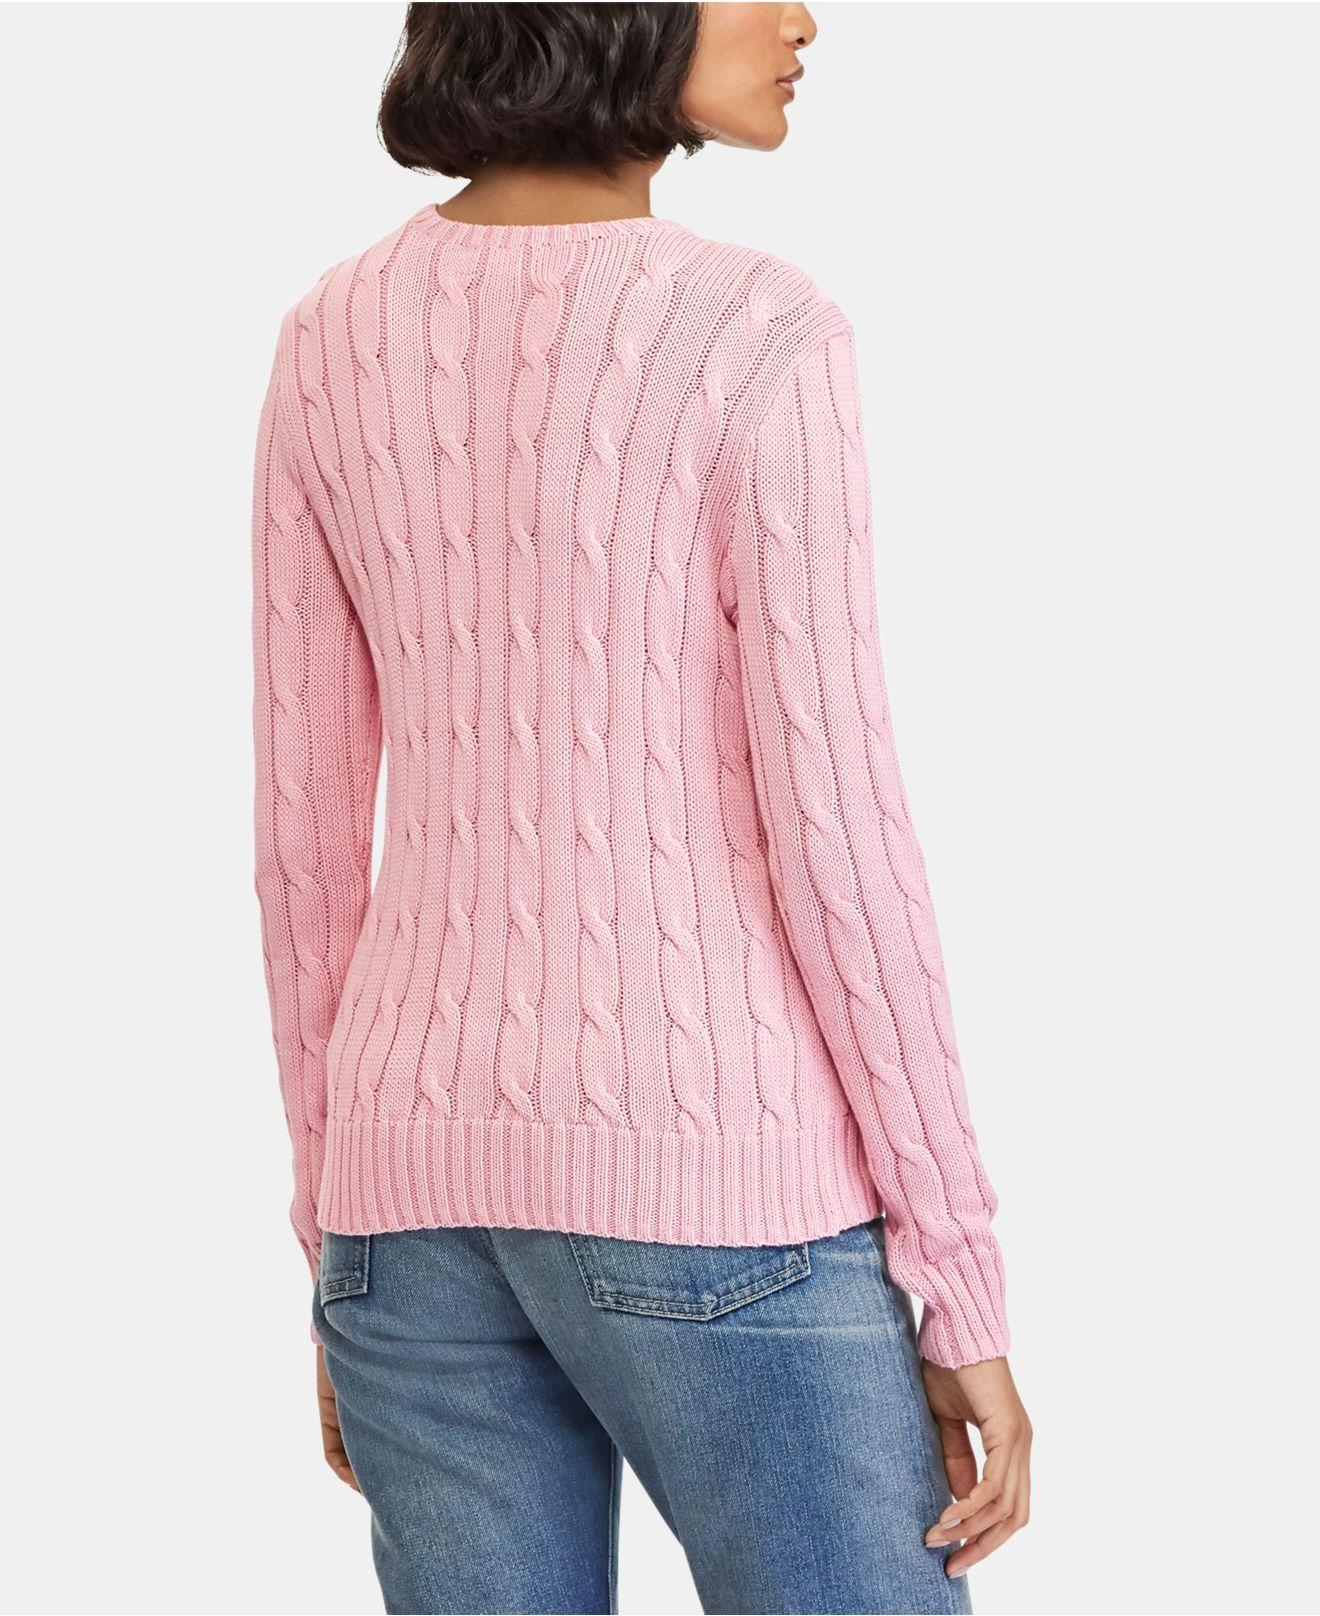 15f5ae404 Lyst - Polo Ralph Lauren Cable-knit Cotton Sweater in Pink - Save 40%